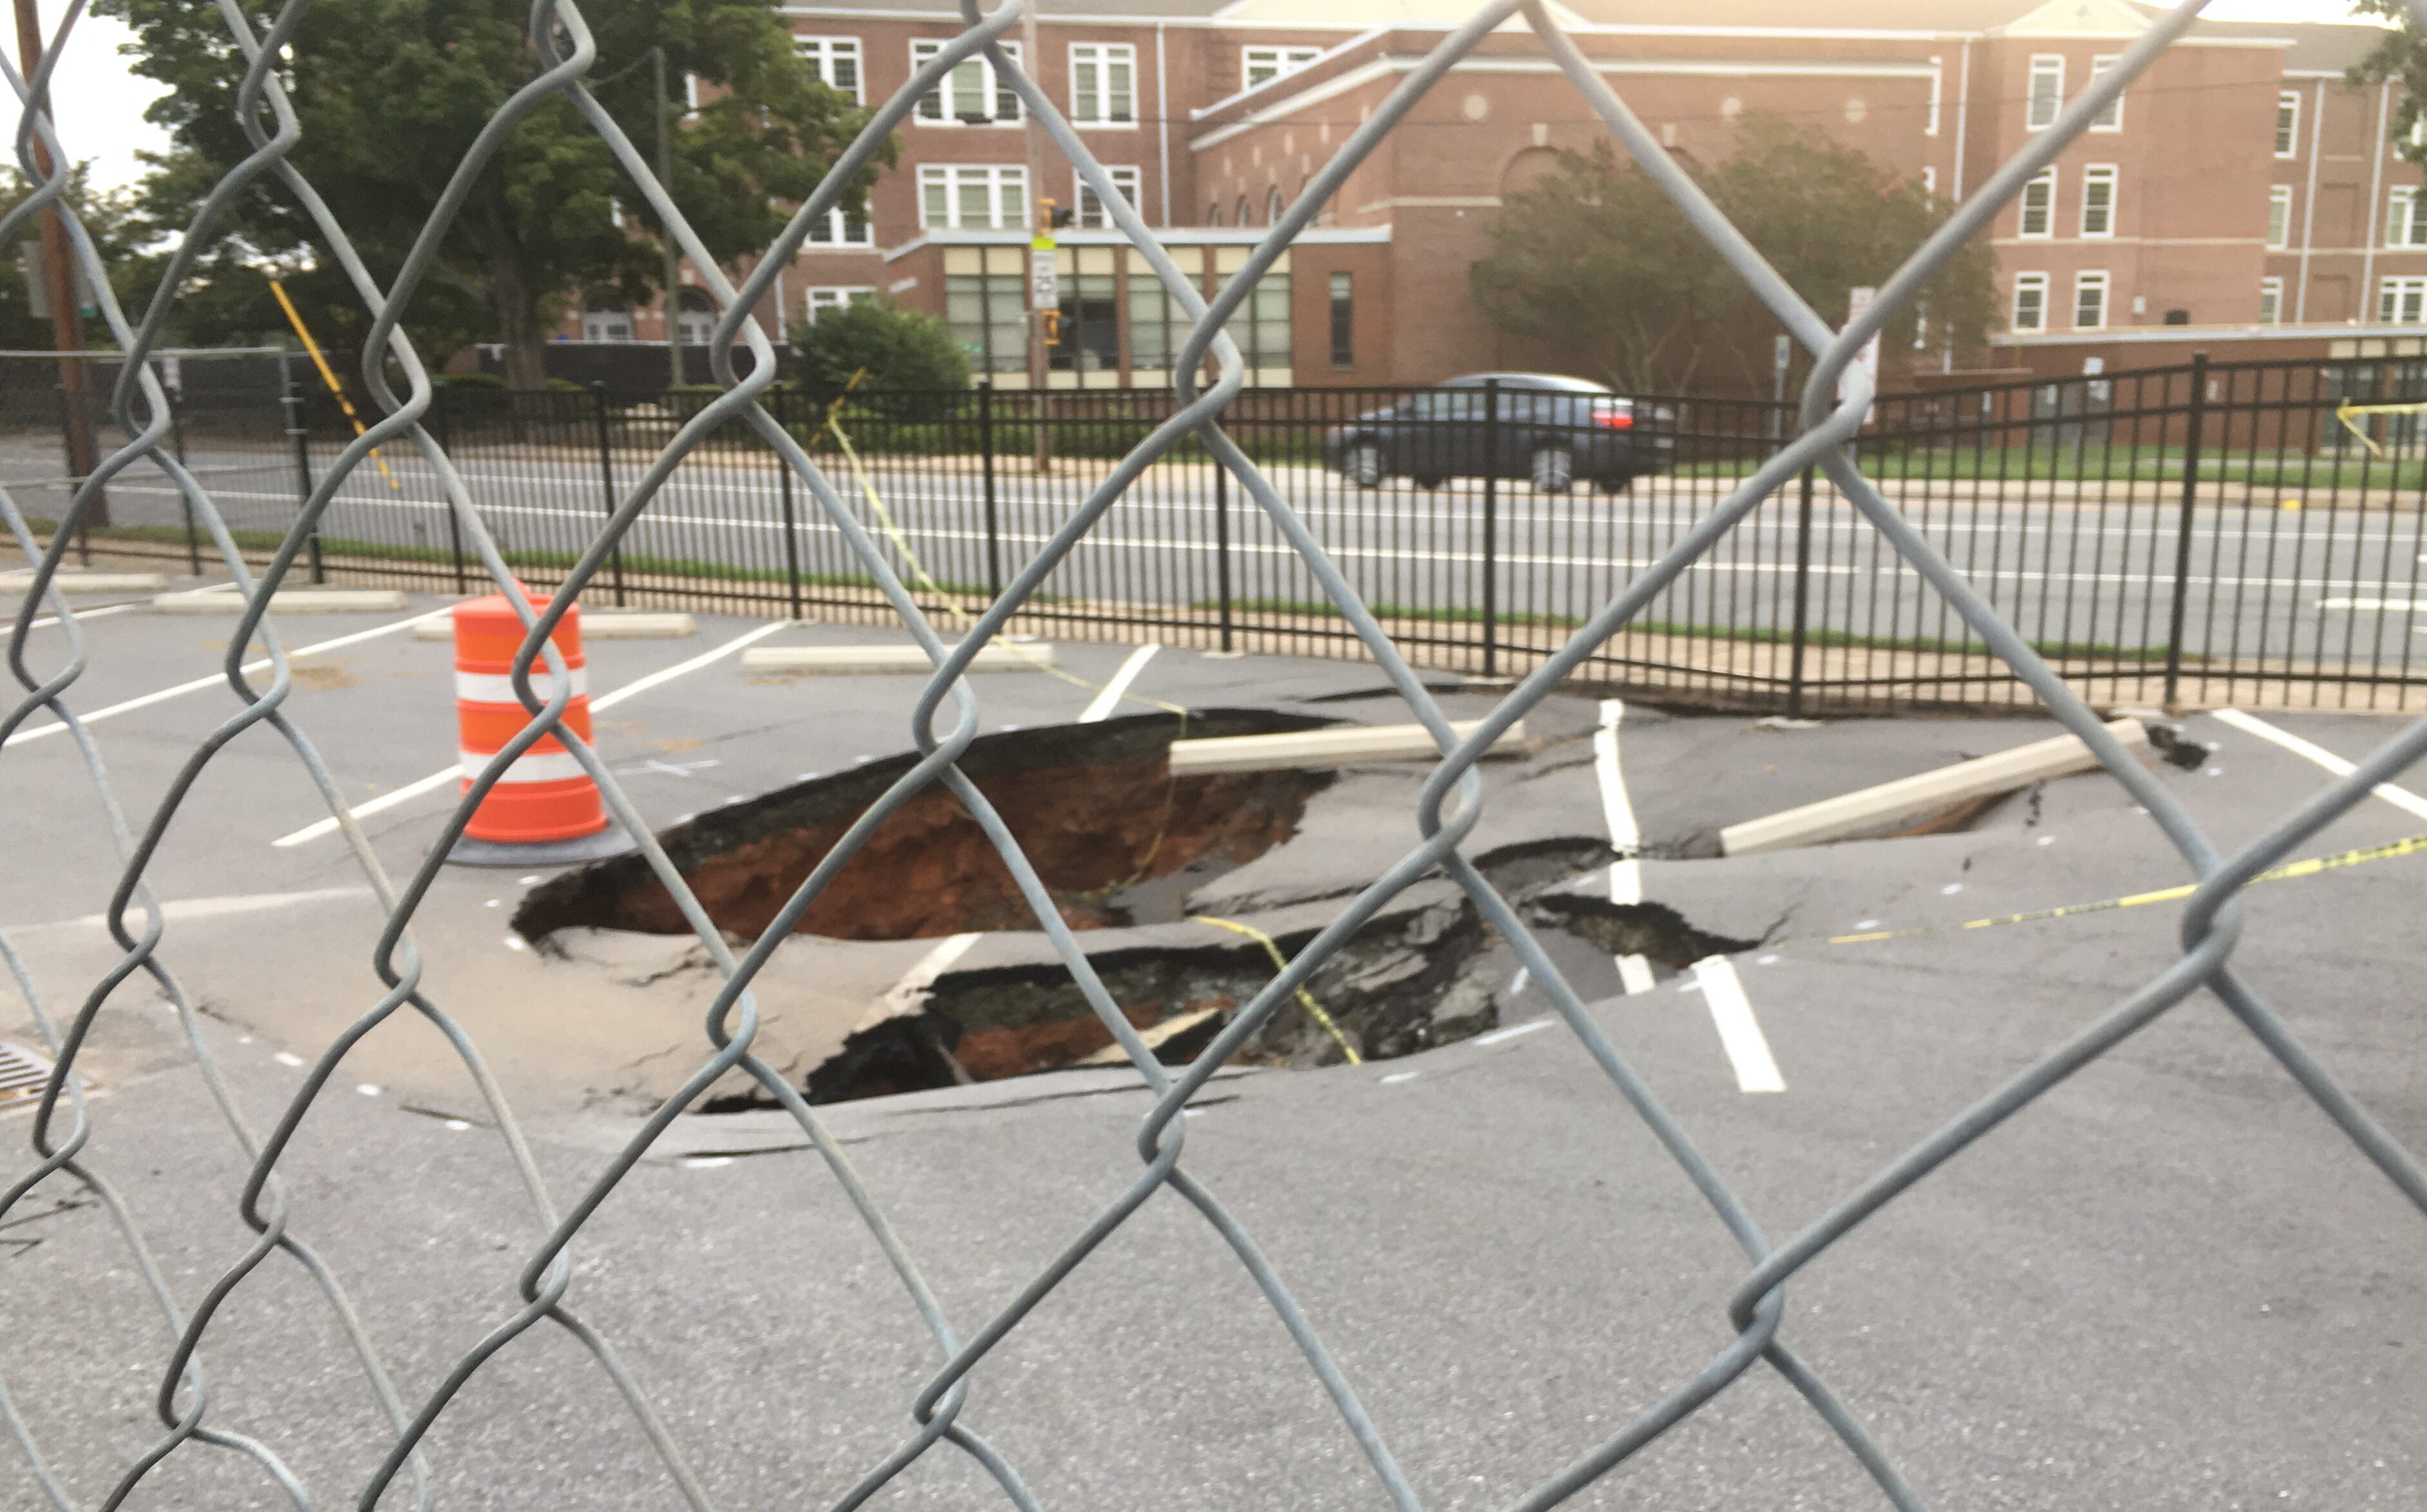 Image shows a sink hole in a parking lot.